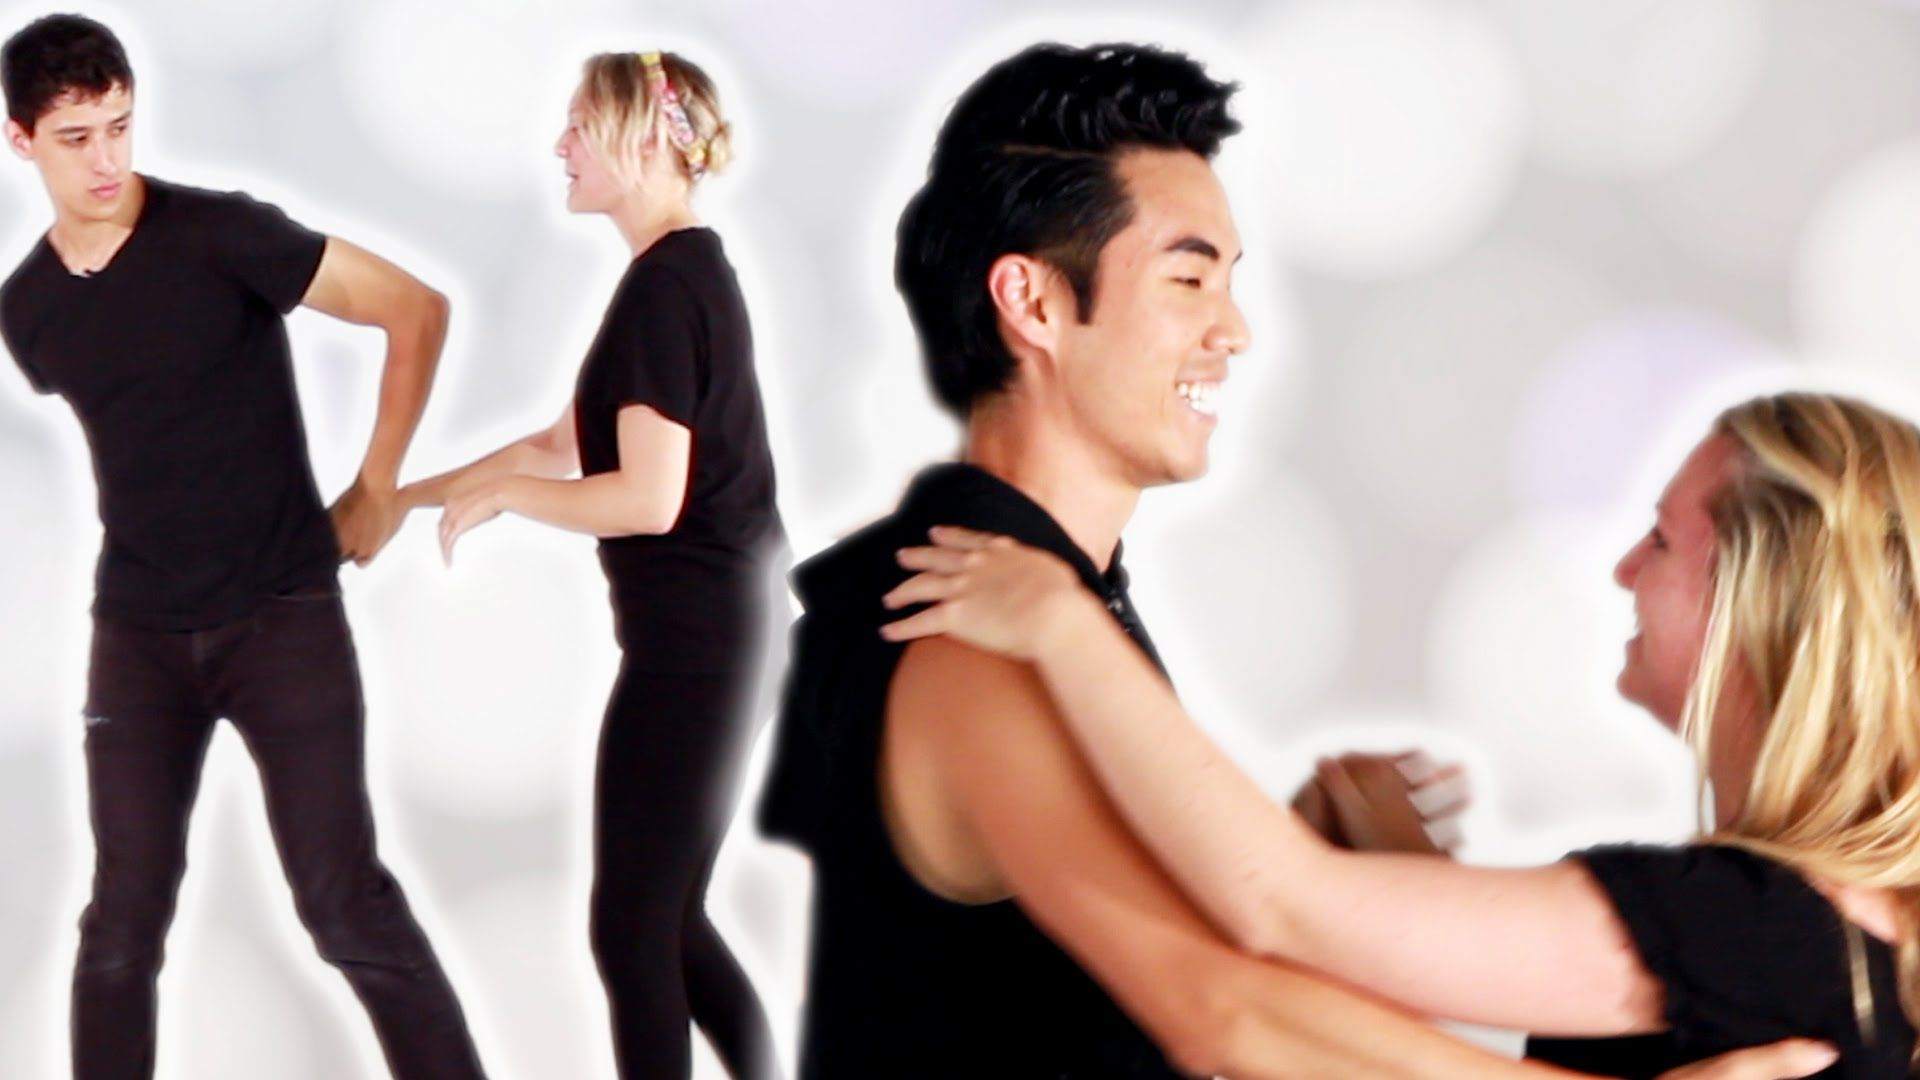 Americans Try Salsa Dancing For The First Time Salsa